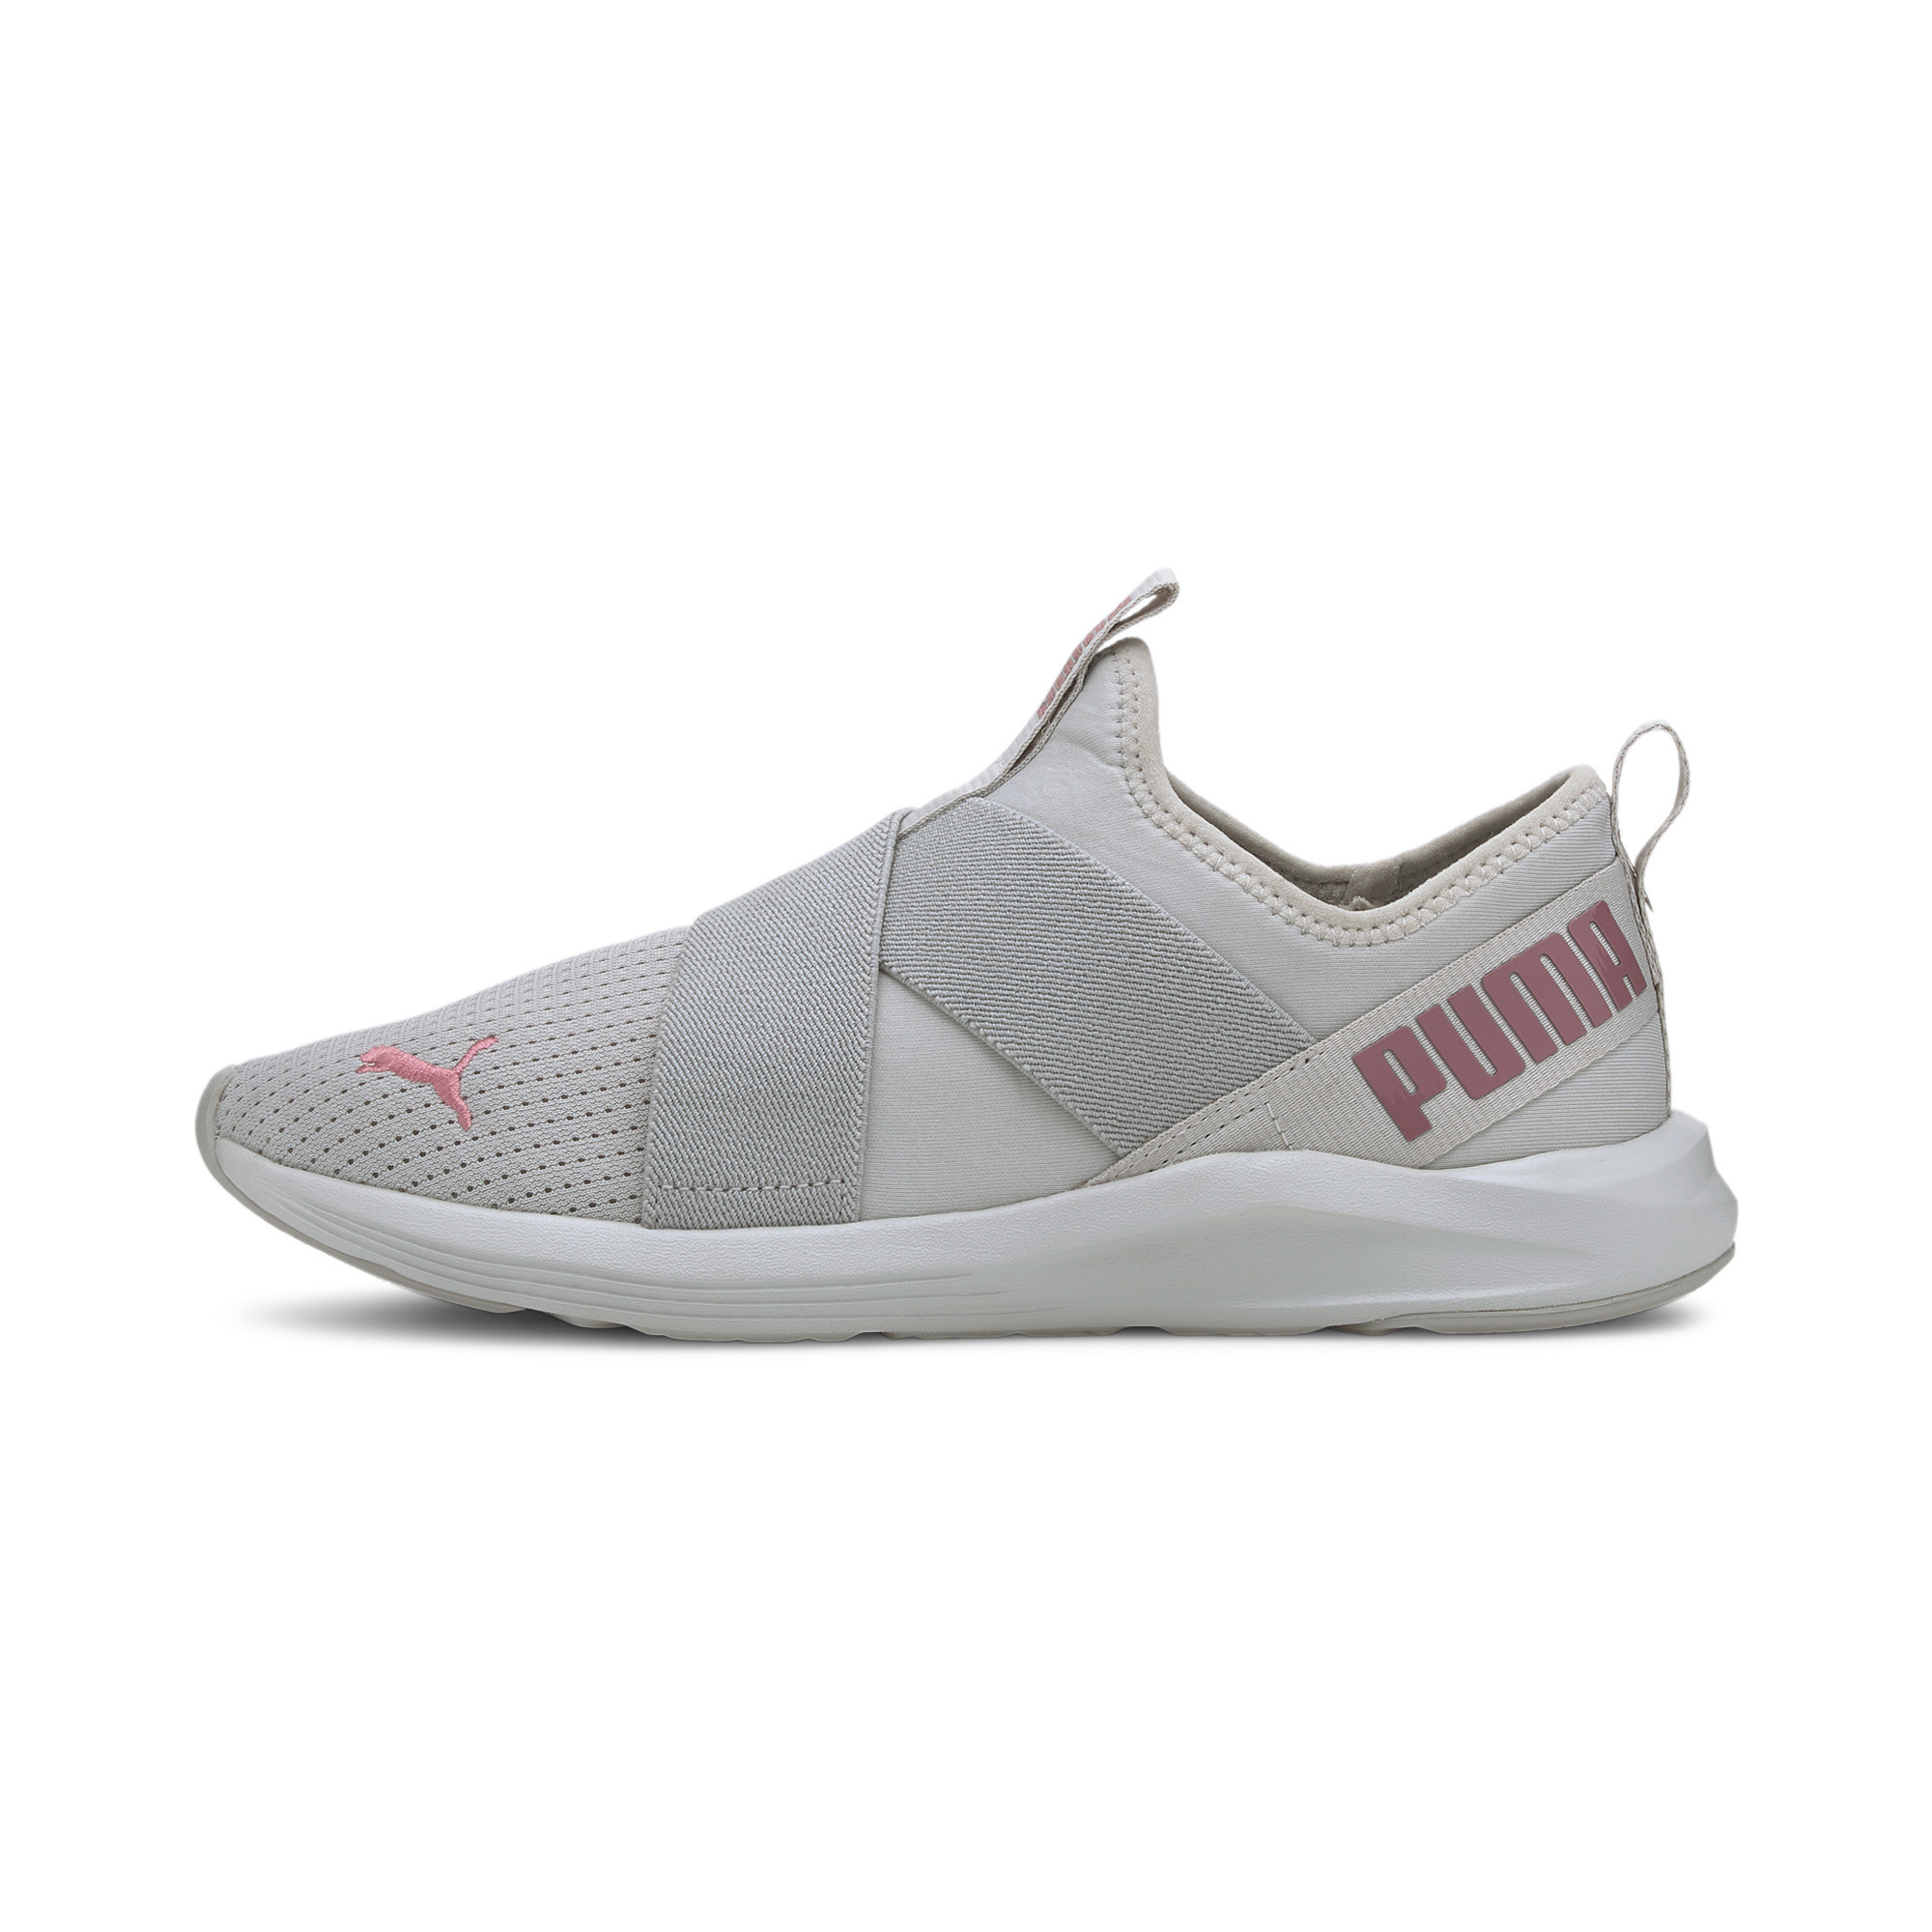 PUMA-Women-039-s-Prowl-Slip-On-Training-Shoes thumbnail 4